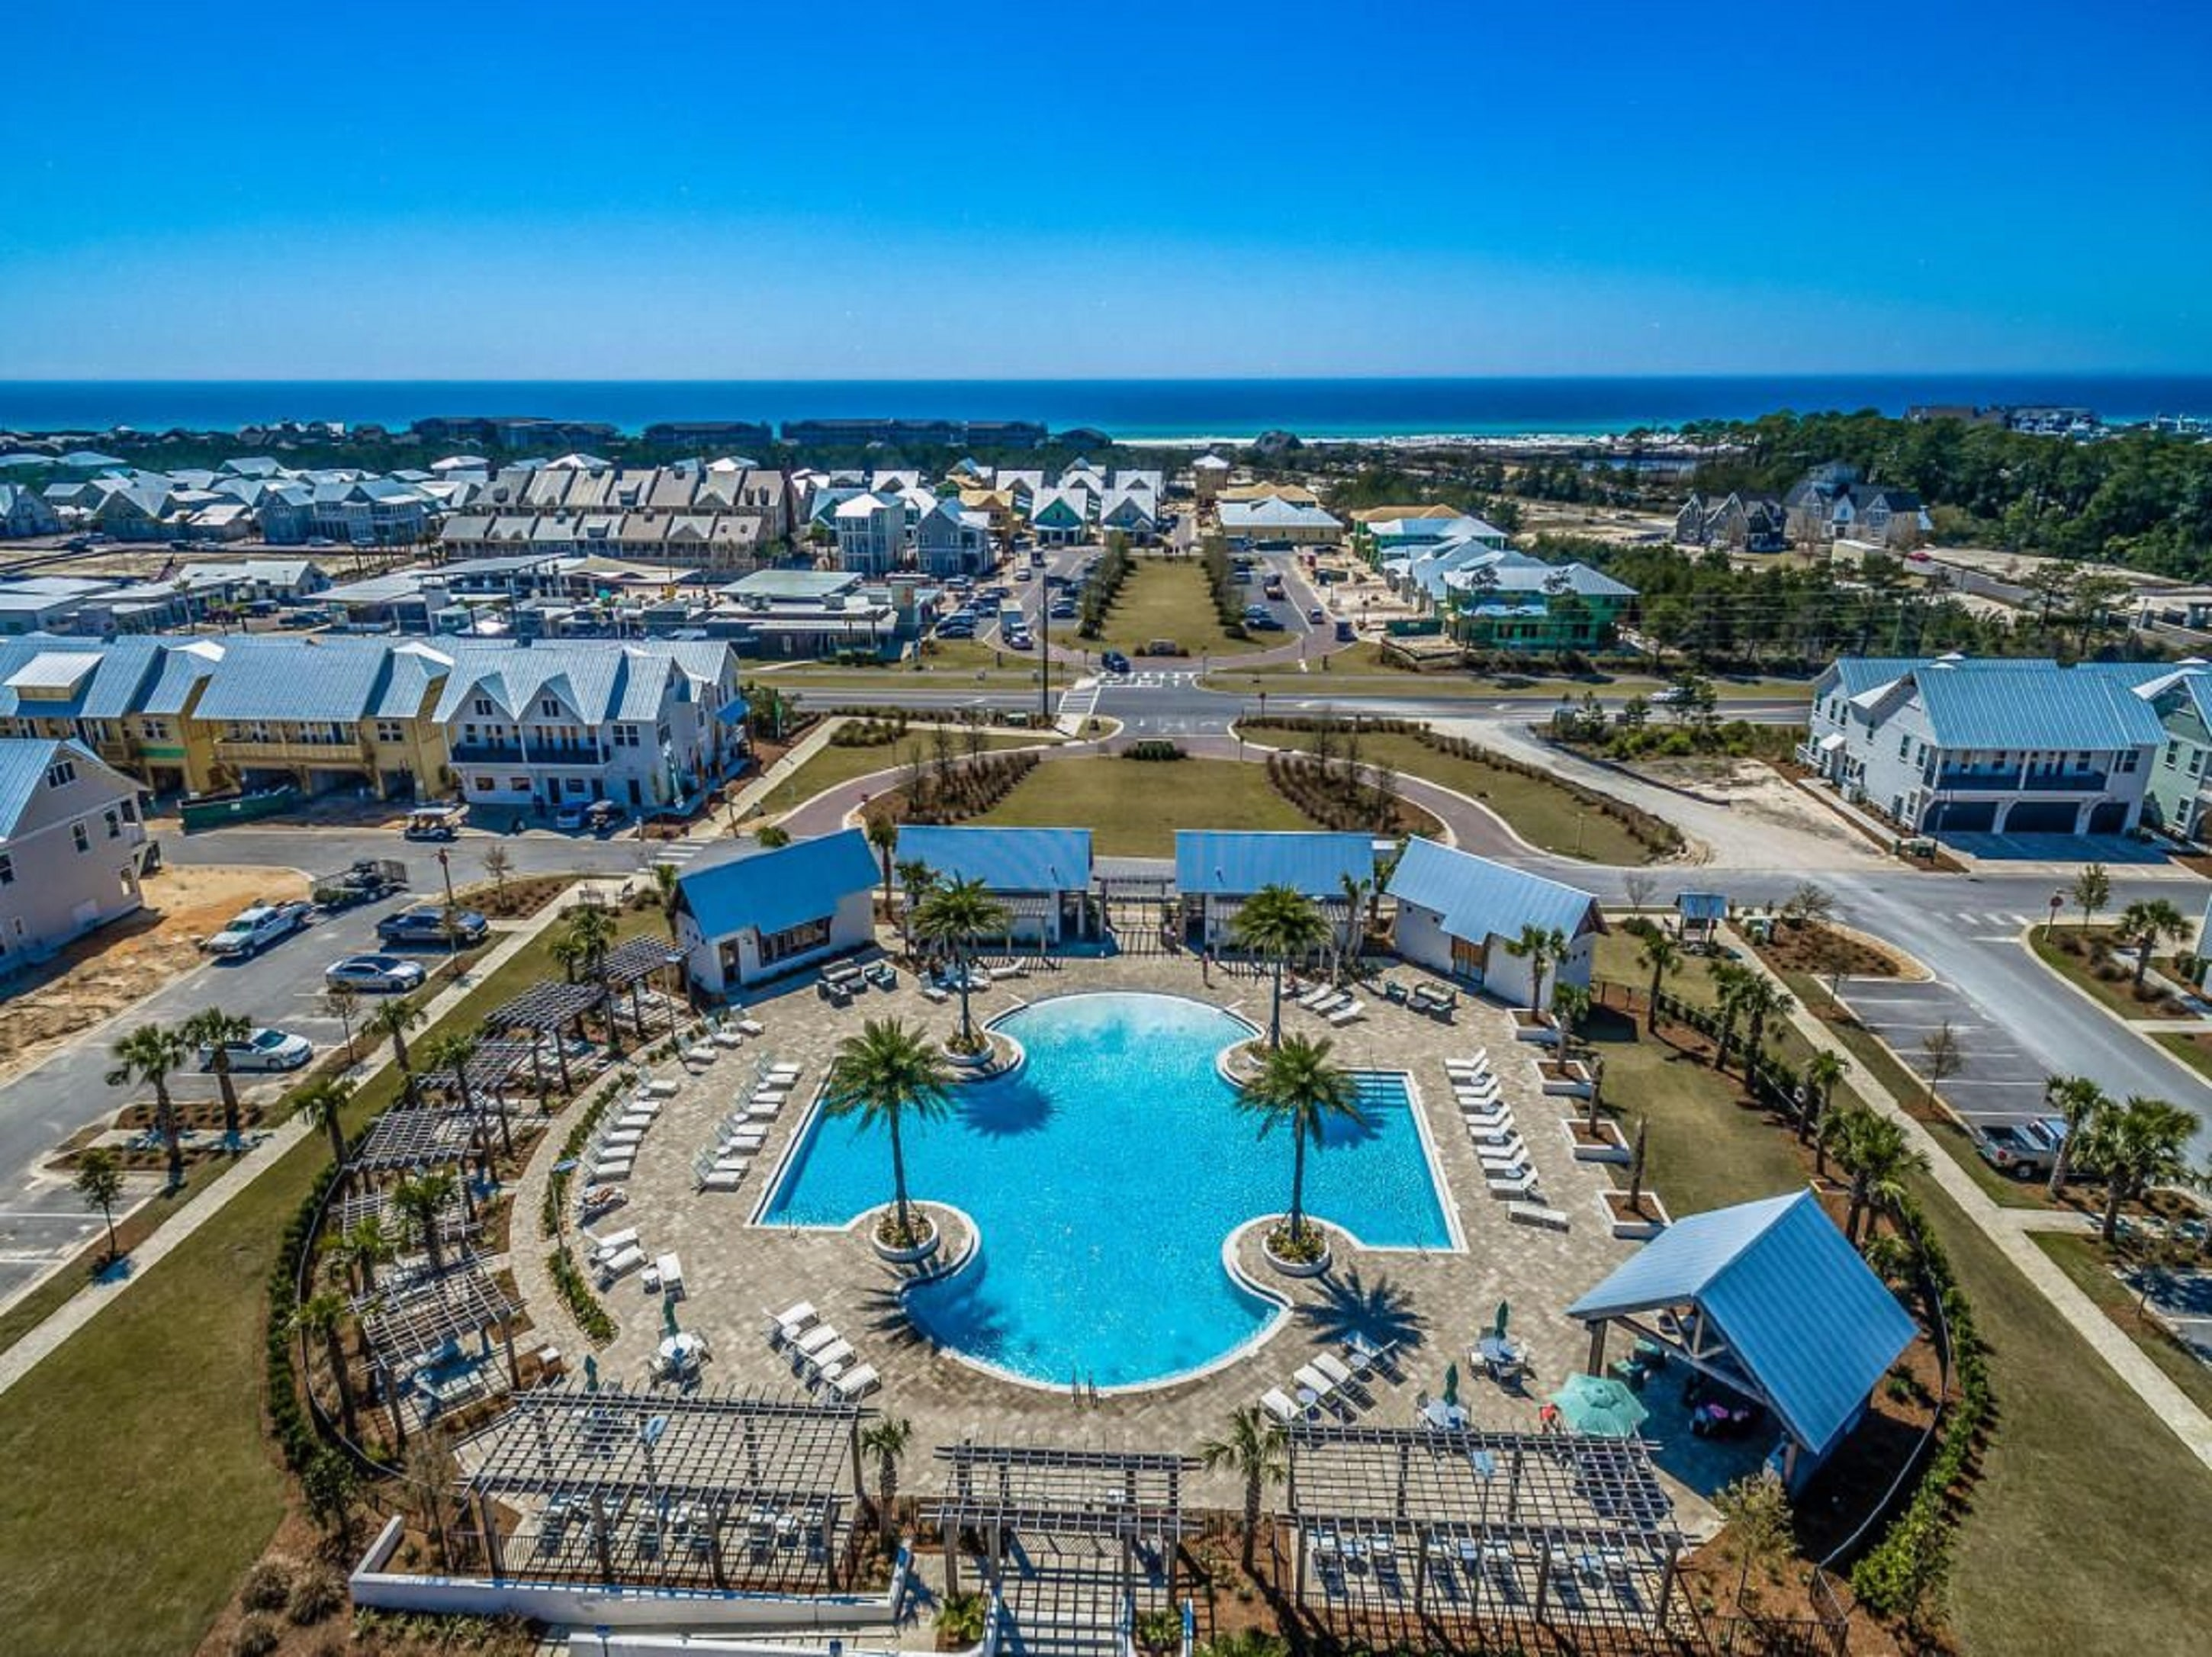 30a Map Of Towns.The Prominence 30a Amenities Prominence Development 30a